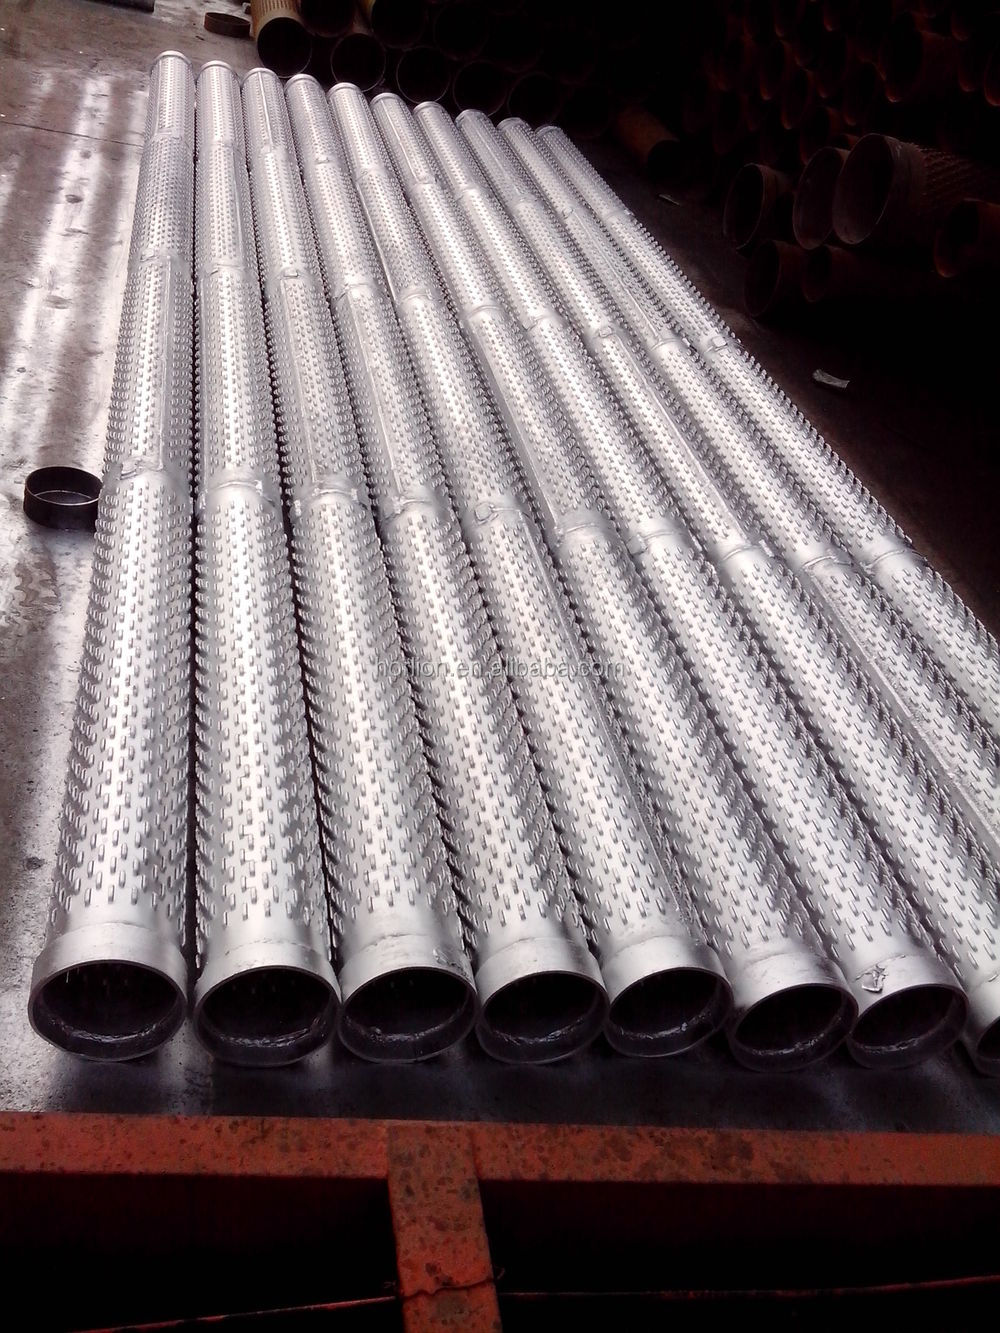 160mm pvc water well casing pipe for sale 200mm pvc water